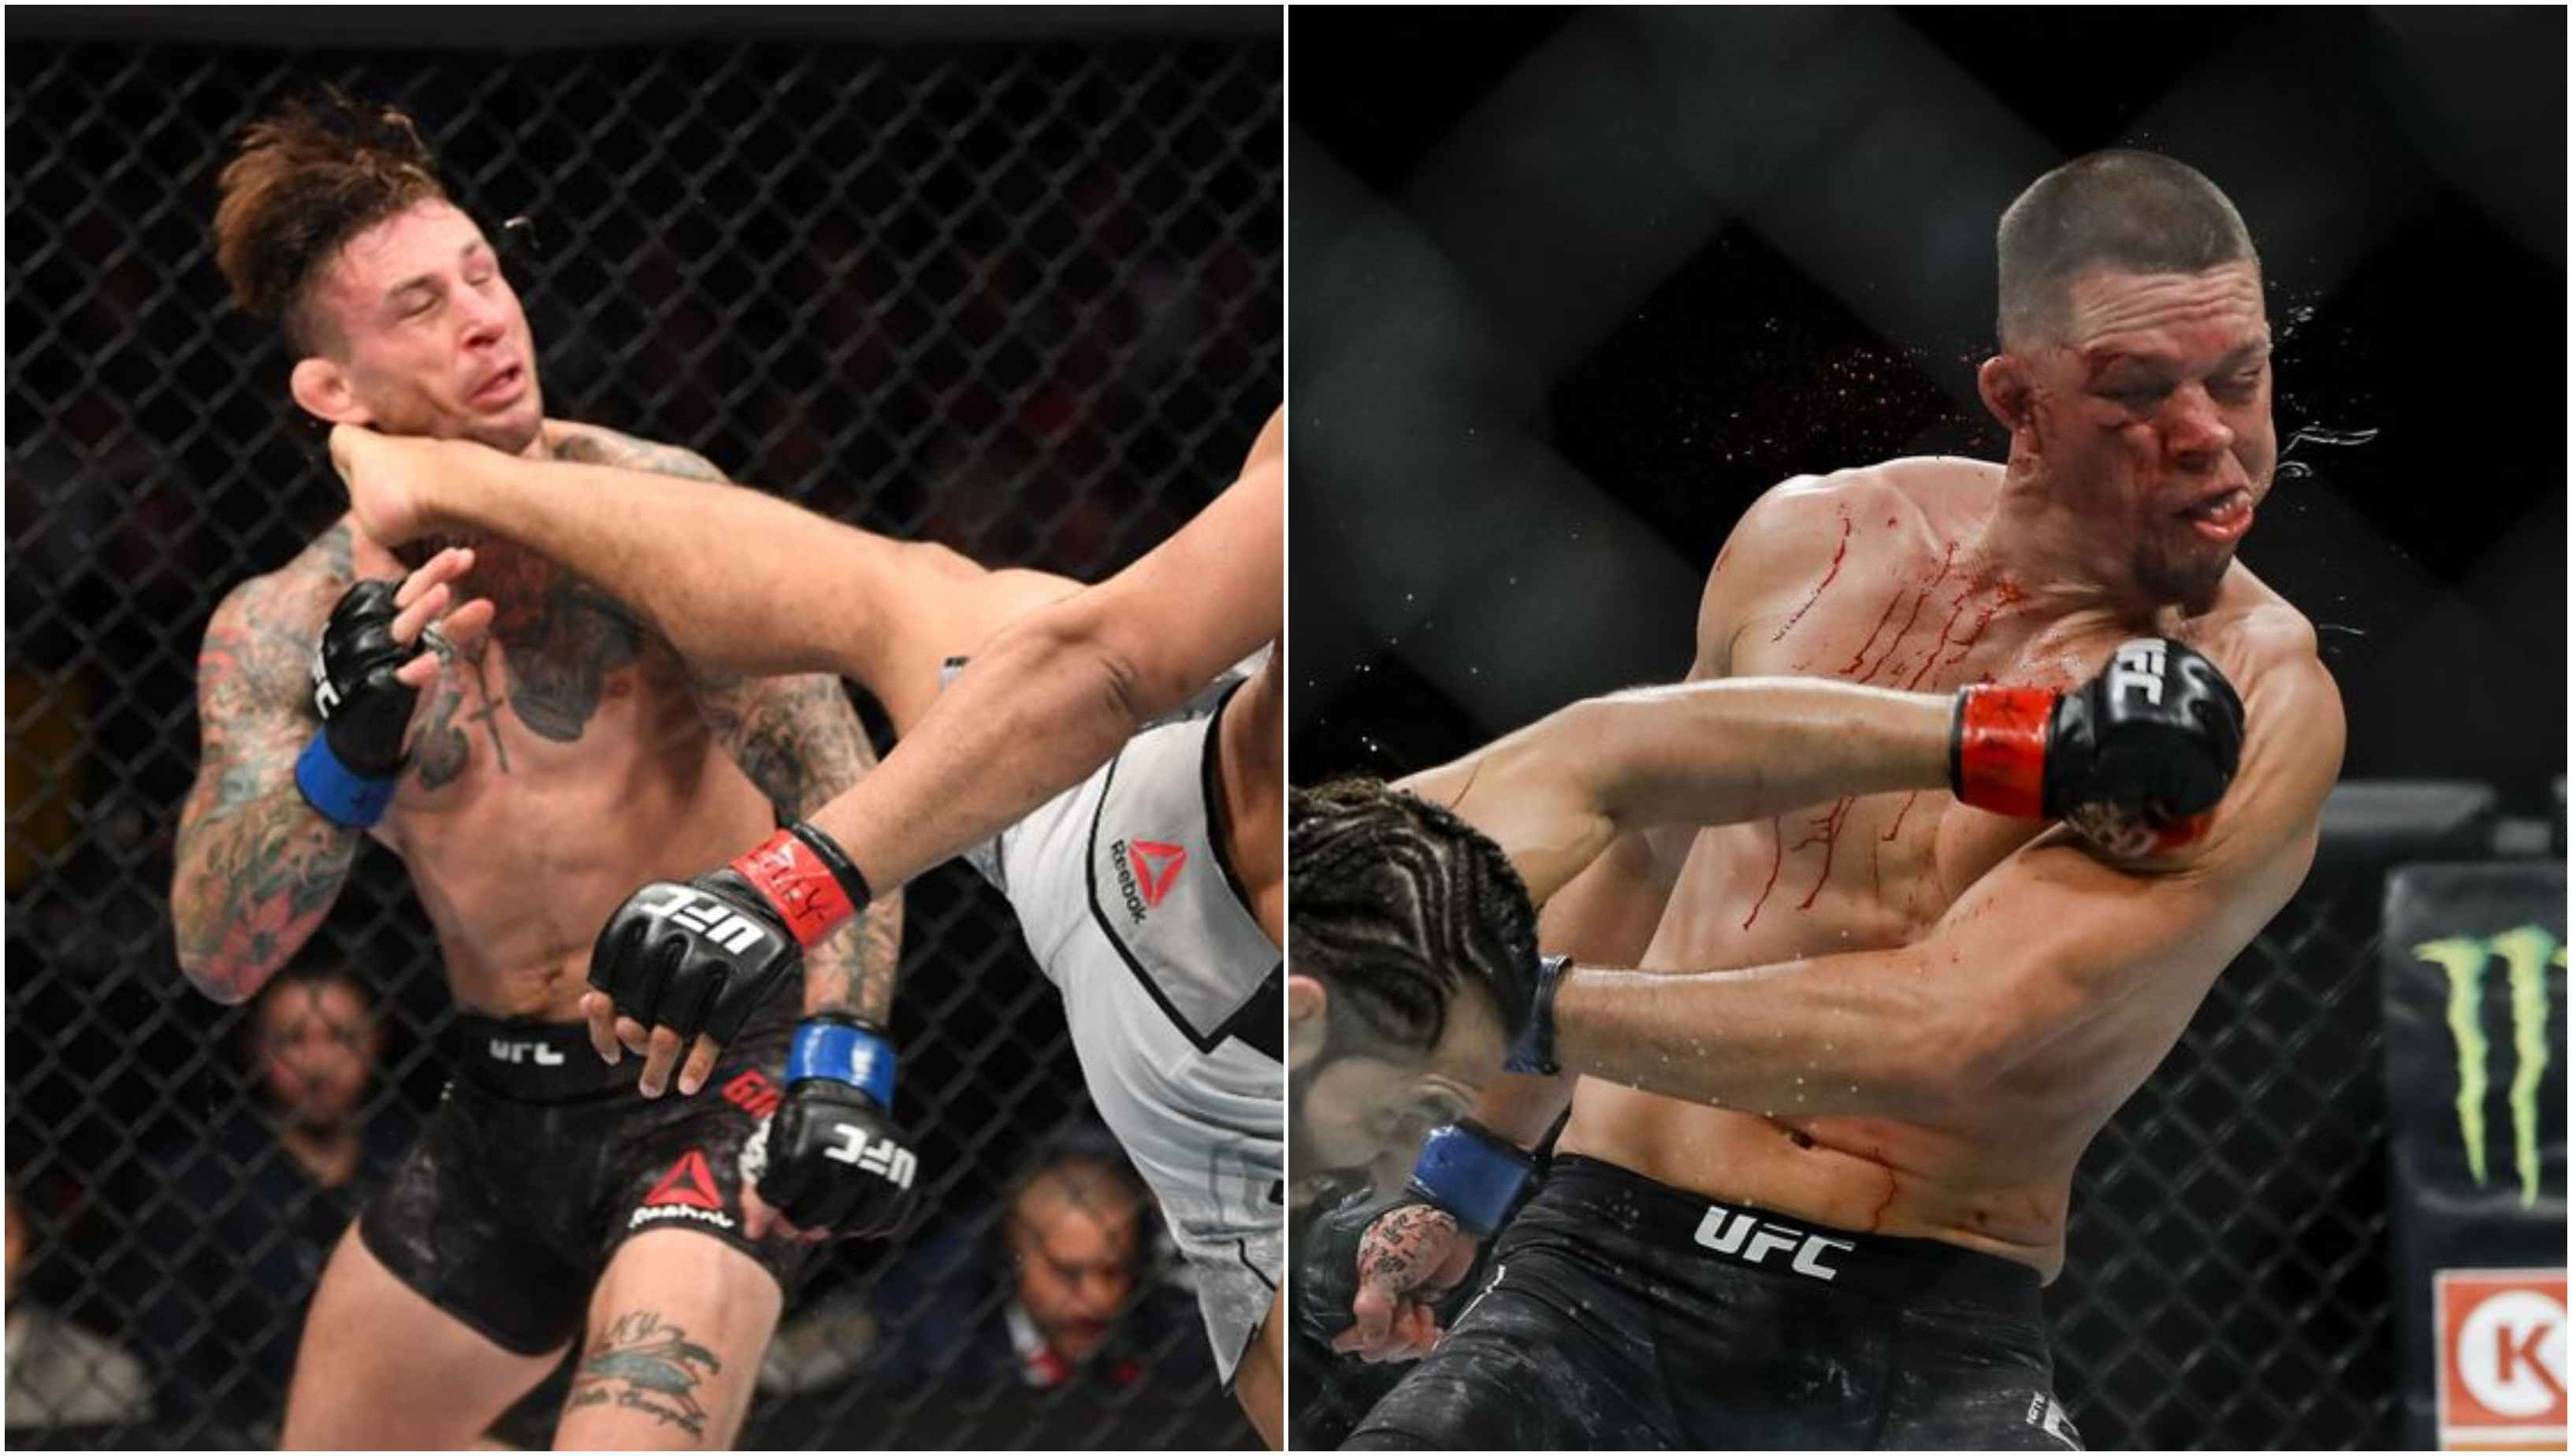 Nate Diaz, Gregor Gillespie facing 90 days suspension after UFC 244 fight - Diaz